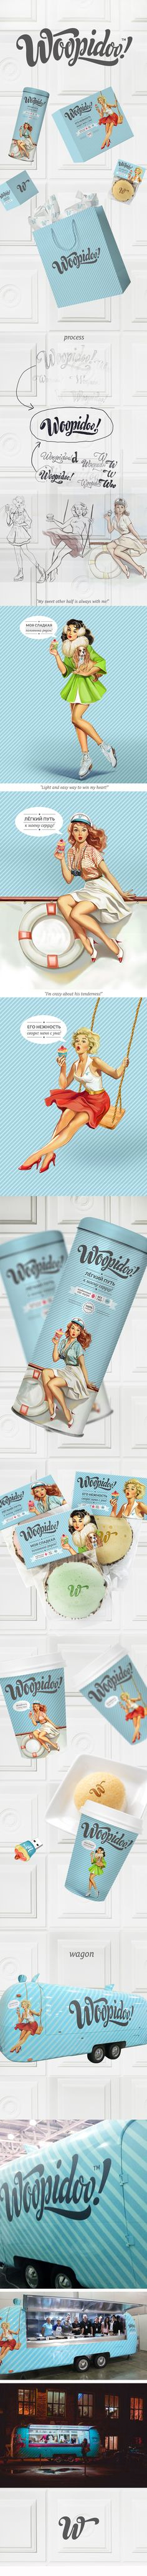 Pin up style graphic for WAT? How fabulous is this American-retro identity for Woopidoo? Woopidoo is a chain of mobile cafes, selling unique desserts in Moscow. Art directed by Valerya Polubiatko? Brand Identity Design, Corporate Design, Graphic Design Typography, Branding Design, Logo Design, Corporate Identity, Visual Identity, Site Web Design, Design Graphique